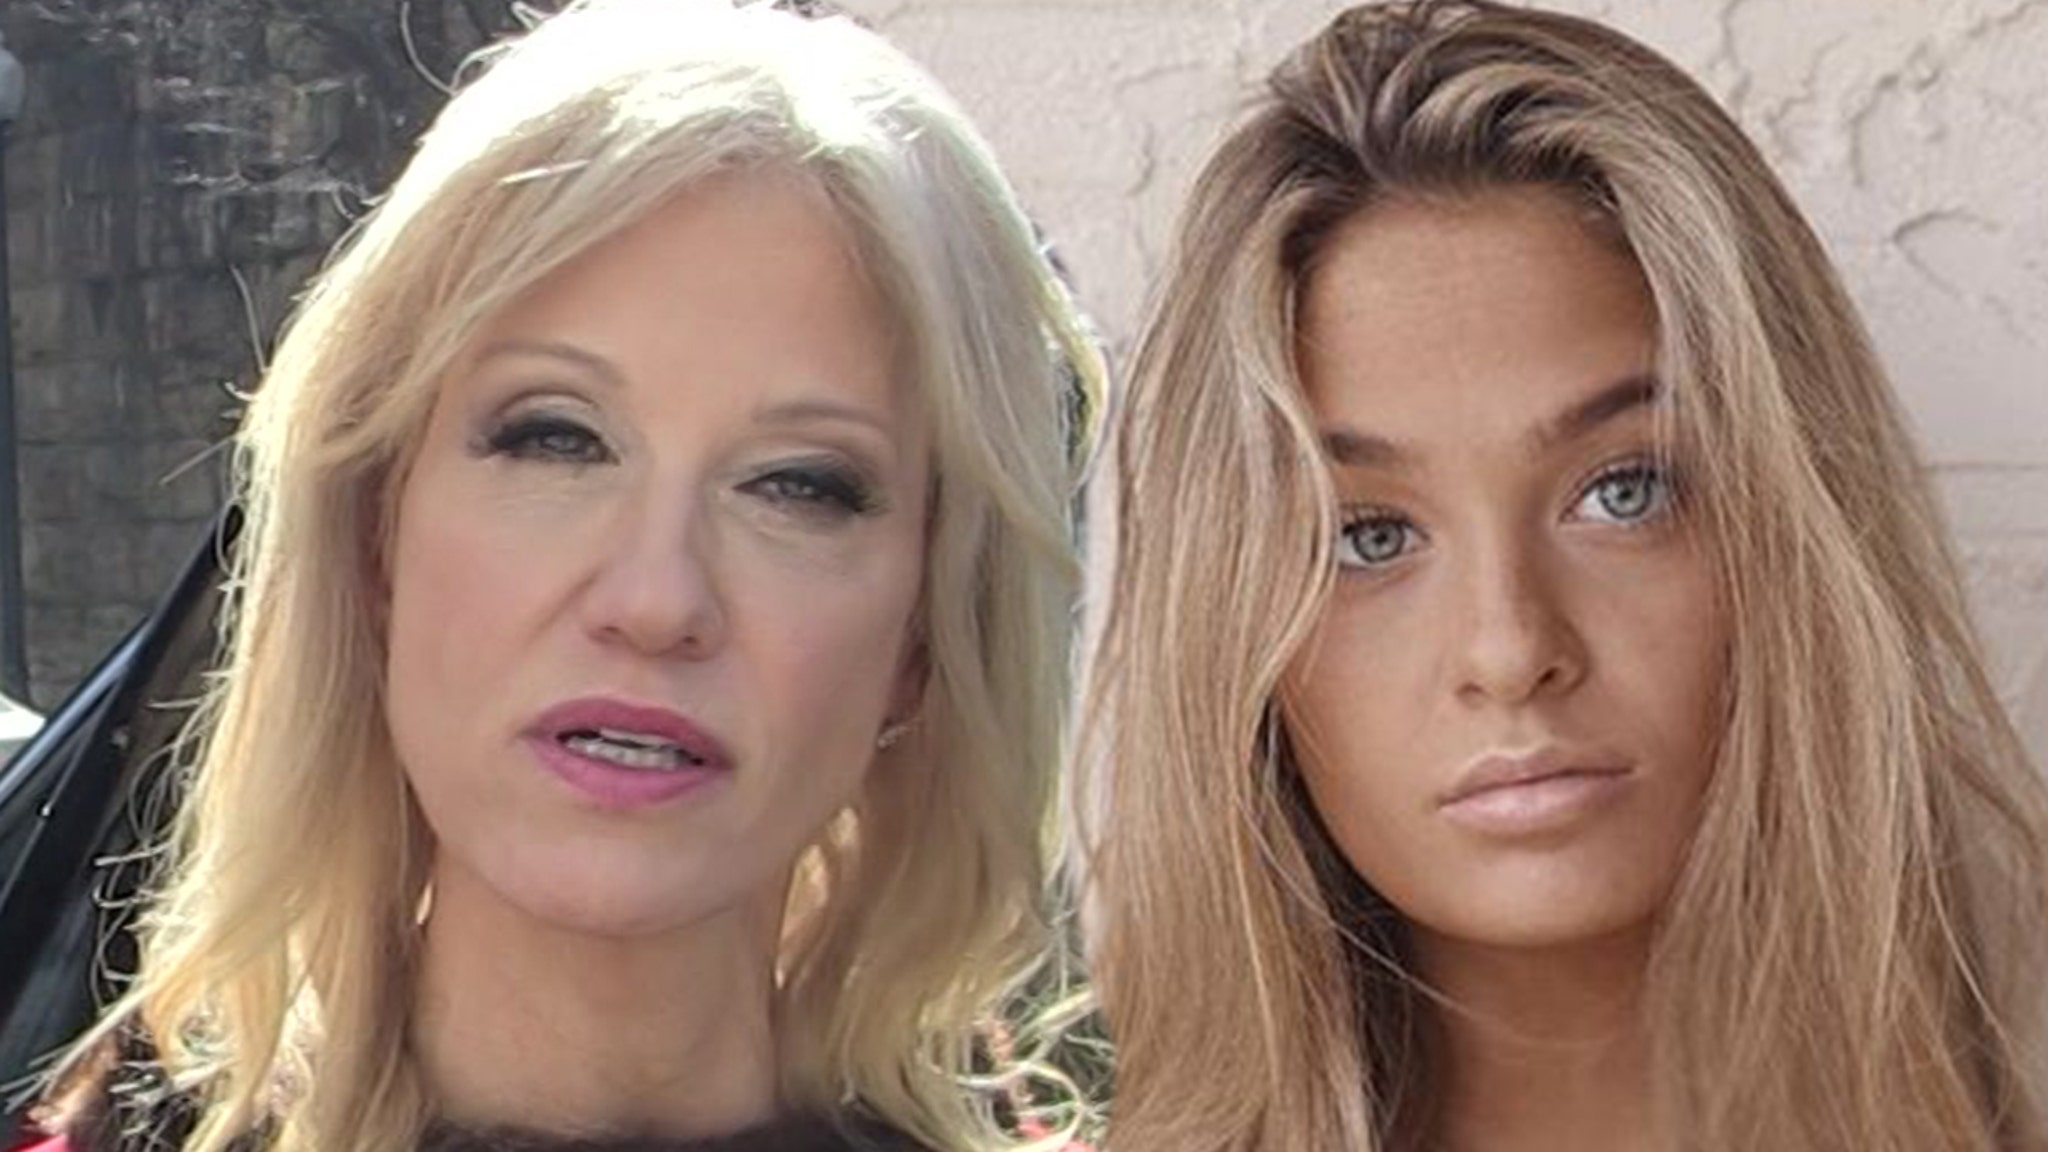 Claudia Conway Her Topless Pic Posts on Kellyanne's Twitter ... Teen Says Mom's 'Going to Jail'